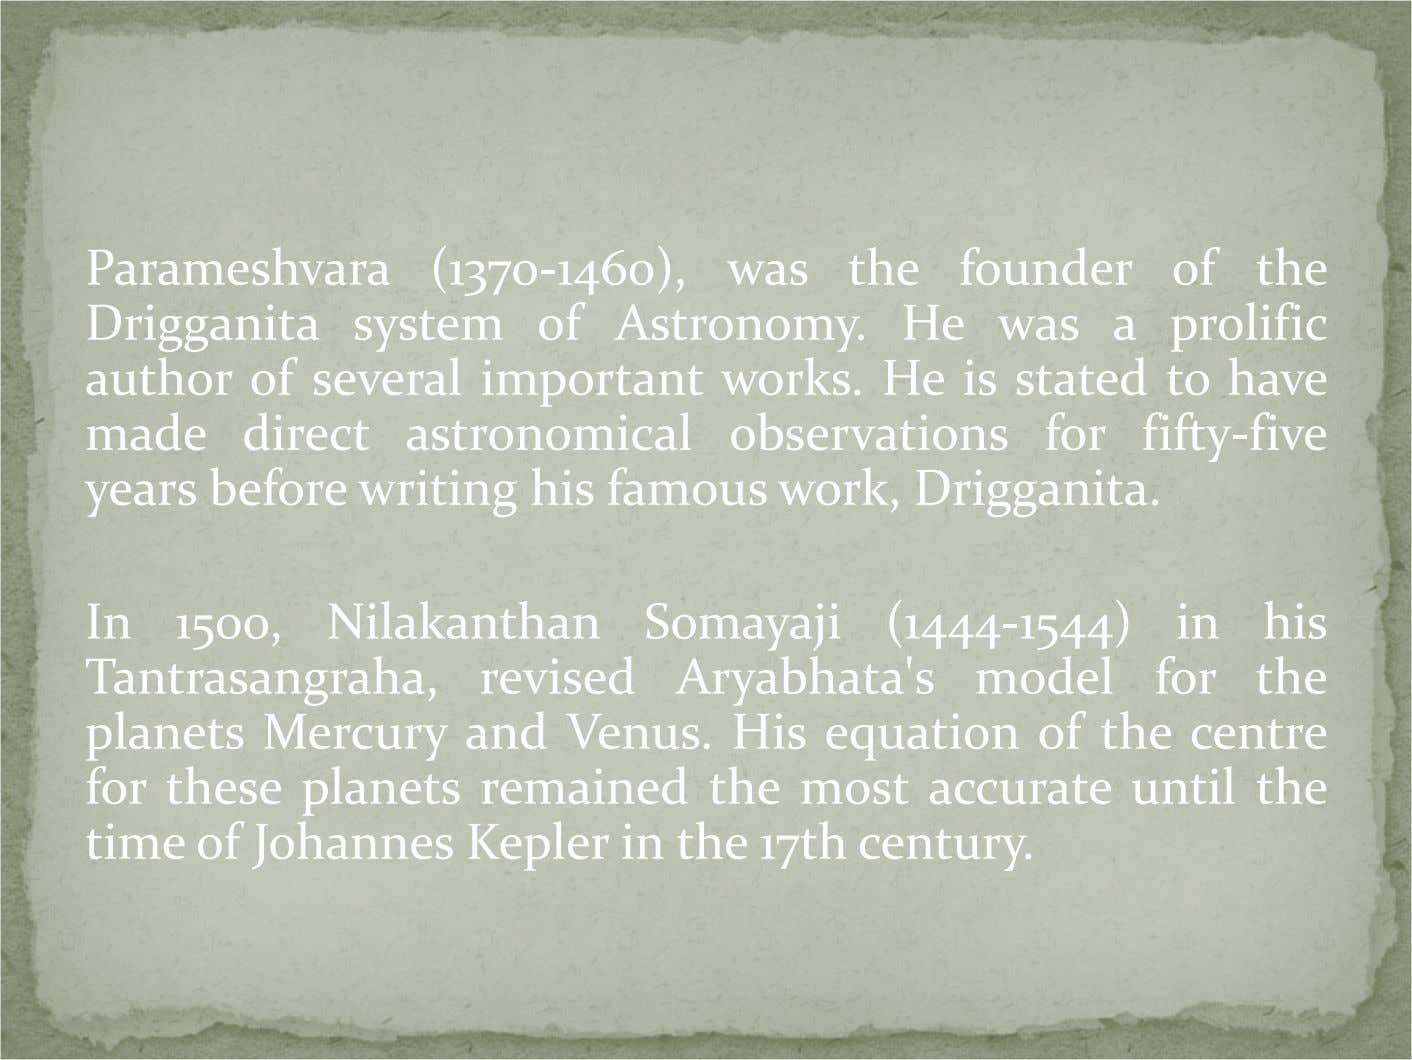 Parameshvara (1370-1460), was the founder of the Drigganita system of Astronomy. He was a prolific